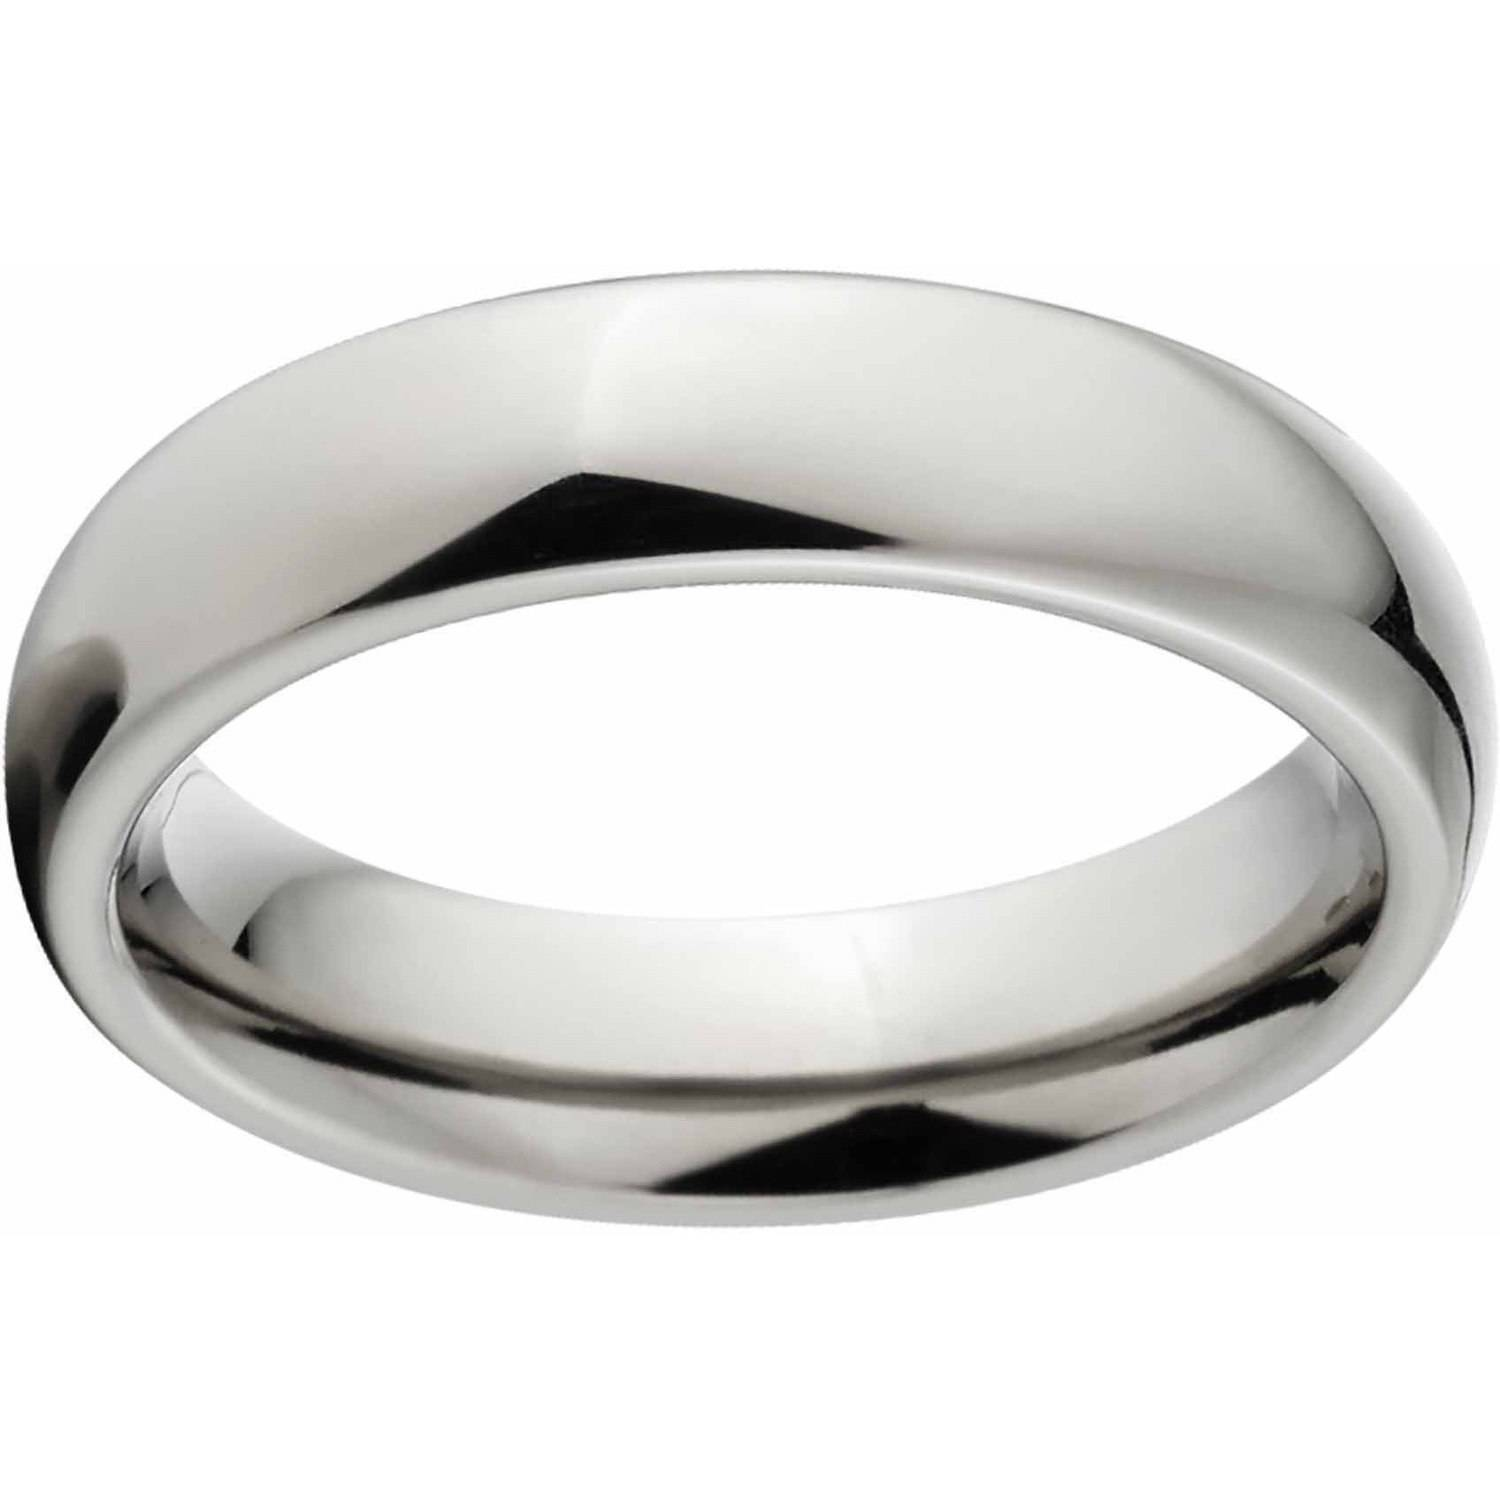 Polished 4mm Titanium Wedding Band With Comfort Fit Design   Walmart.com